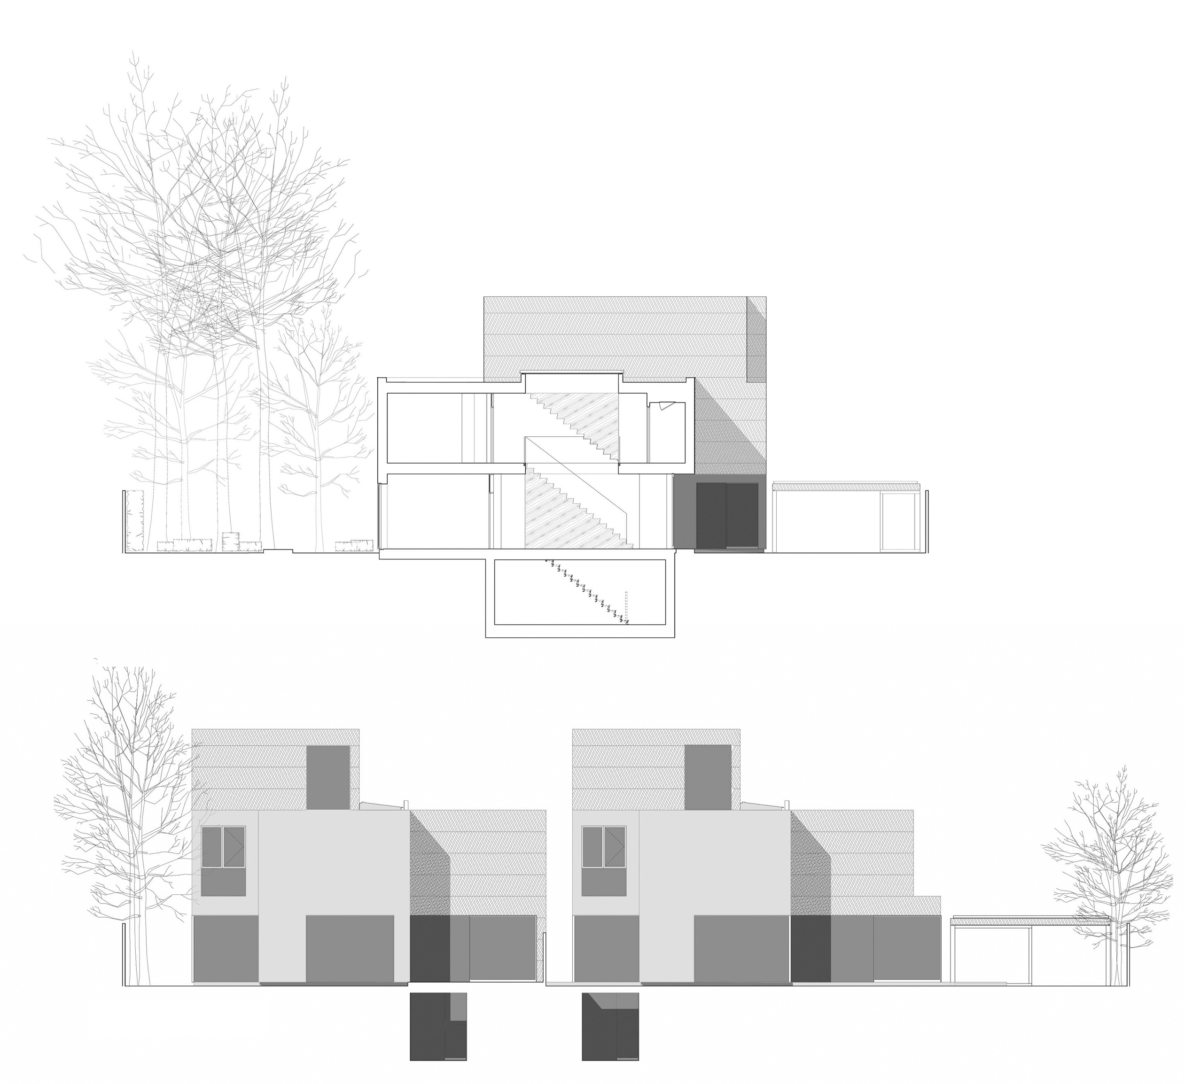 Alison Brooks Architects _ Herringbone Houses _ Sections Elevations 2